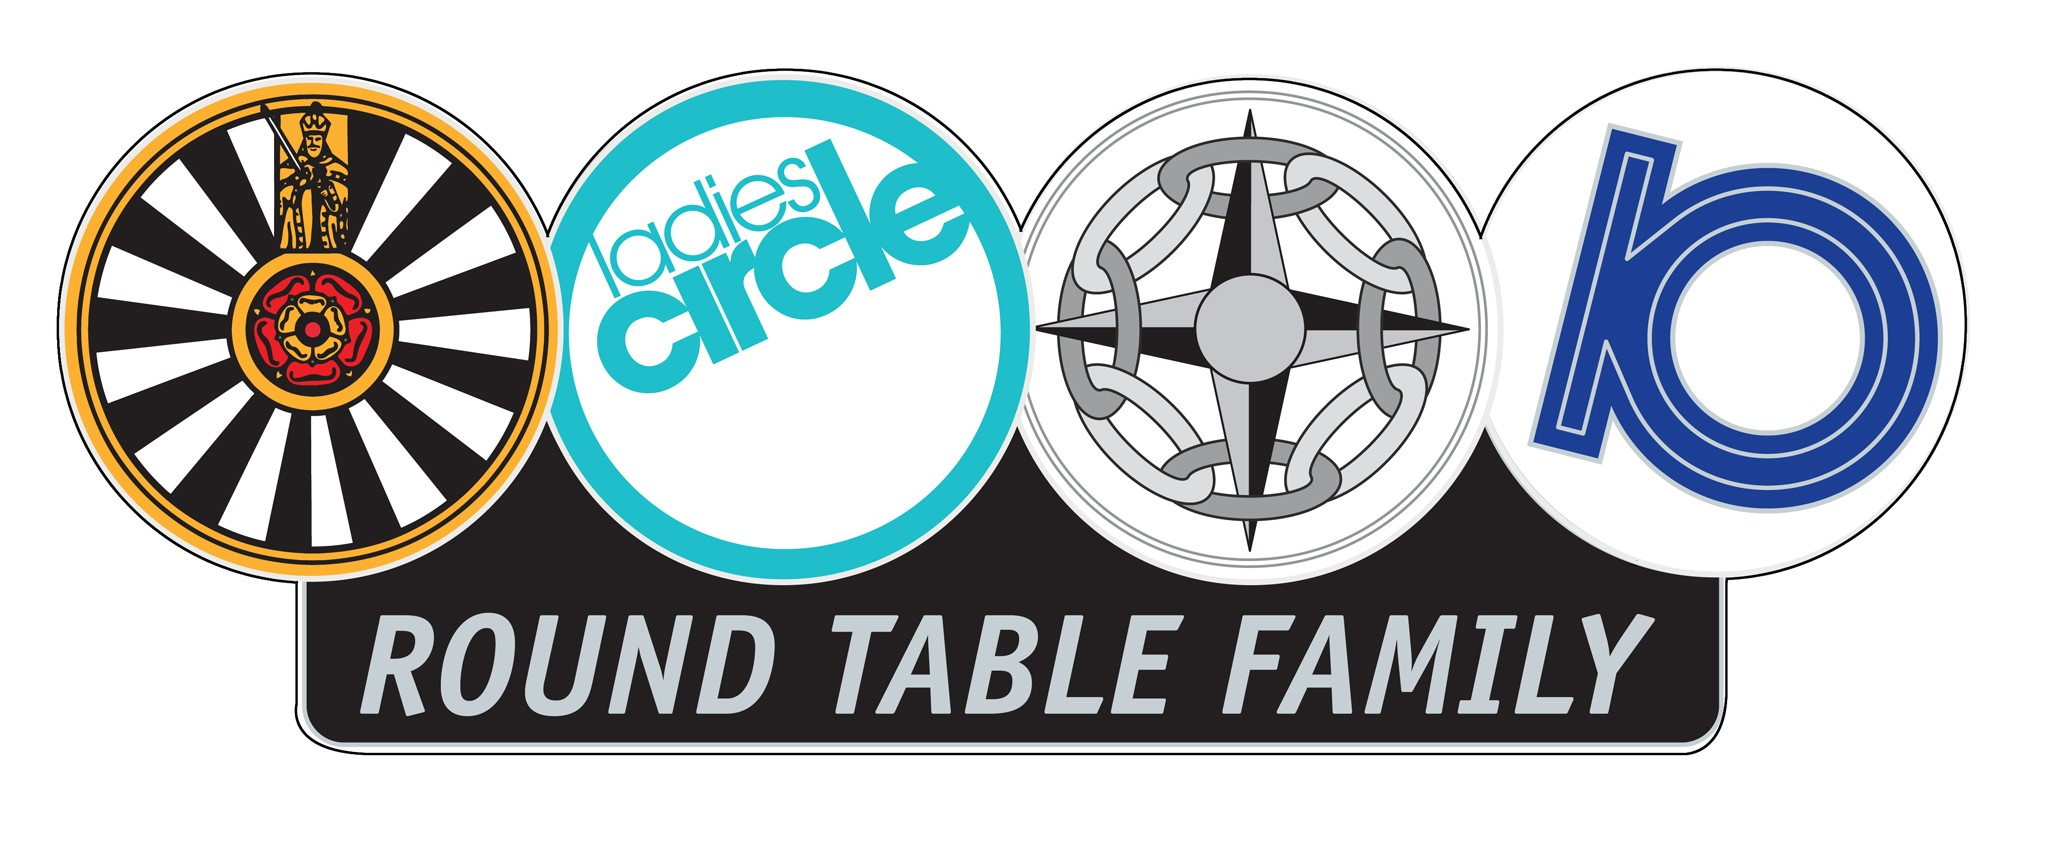 The Round Table Family